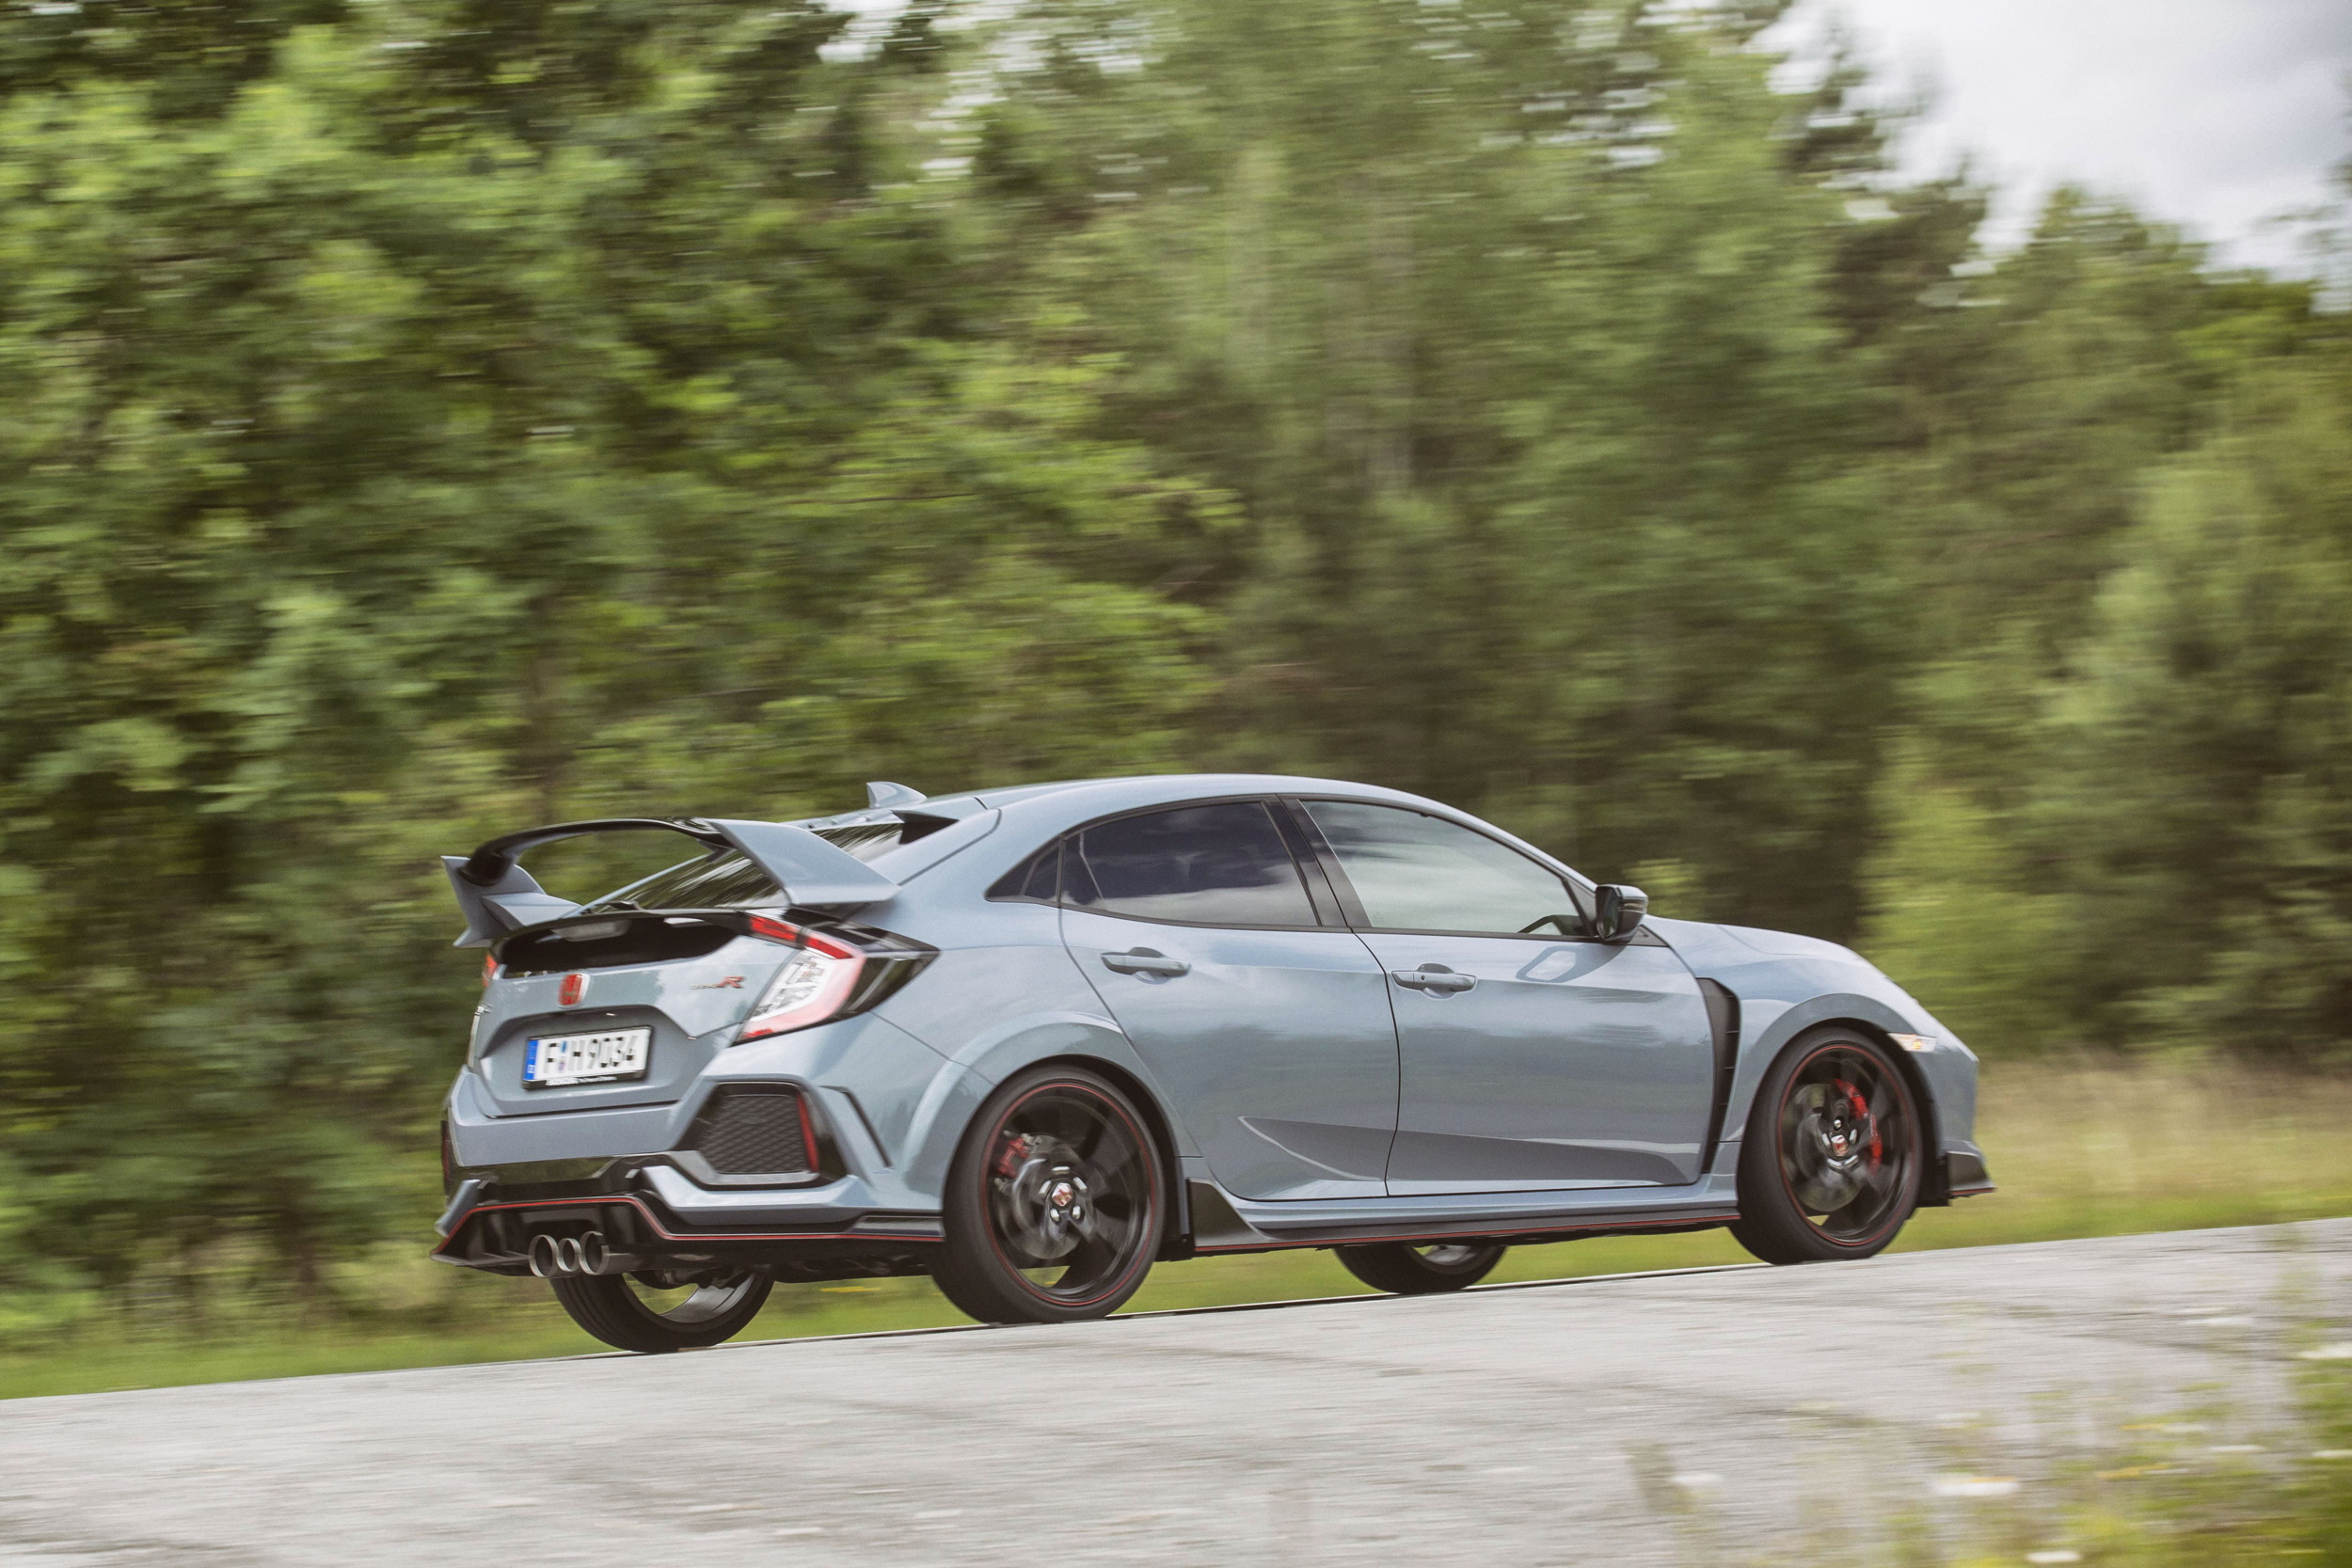 Honda Civic Type R cornering